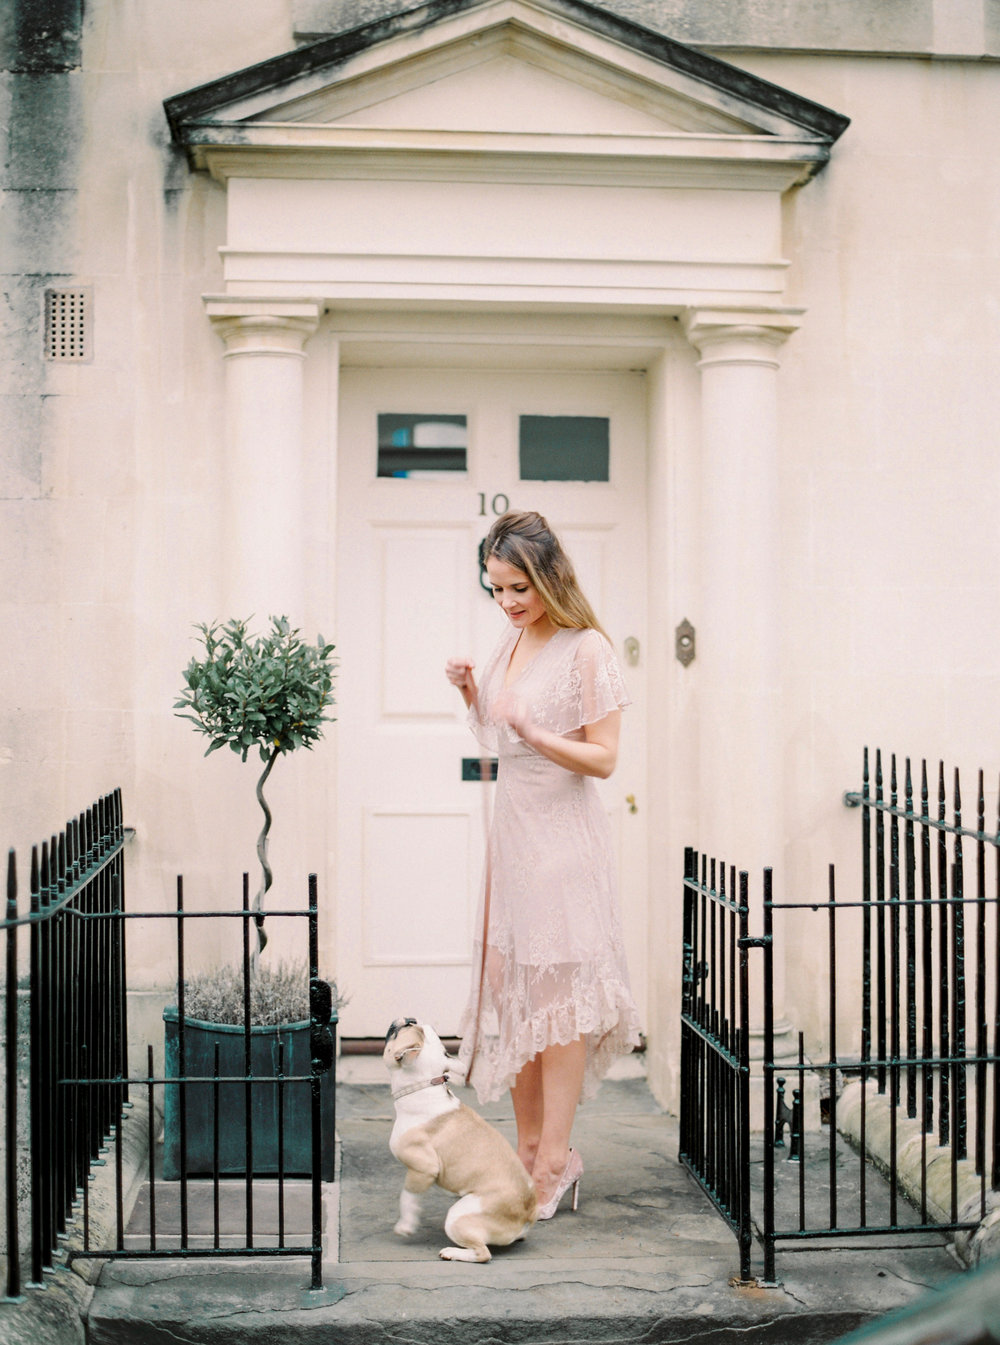 Lily & Sage | Luxury Wedding Planner UK | Our Chic & Romantic Engagement Shoot in Bath Pastel | Katie Julia Photography - 027.JPG